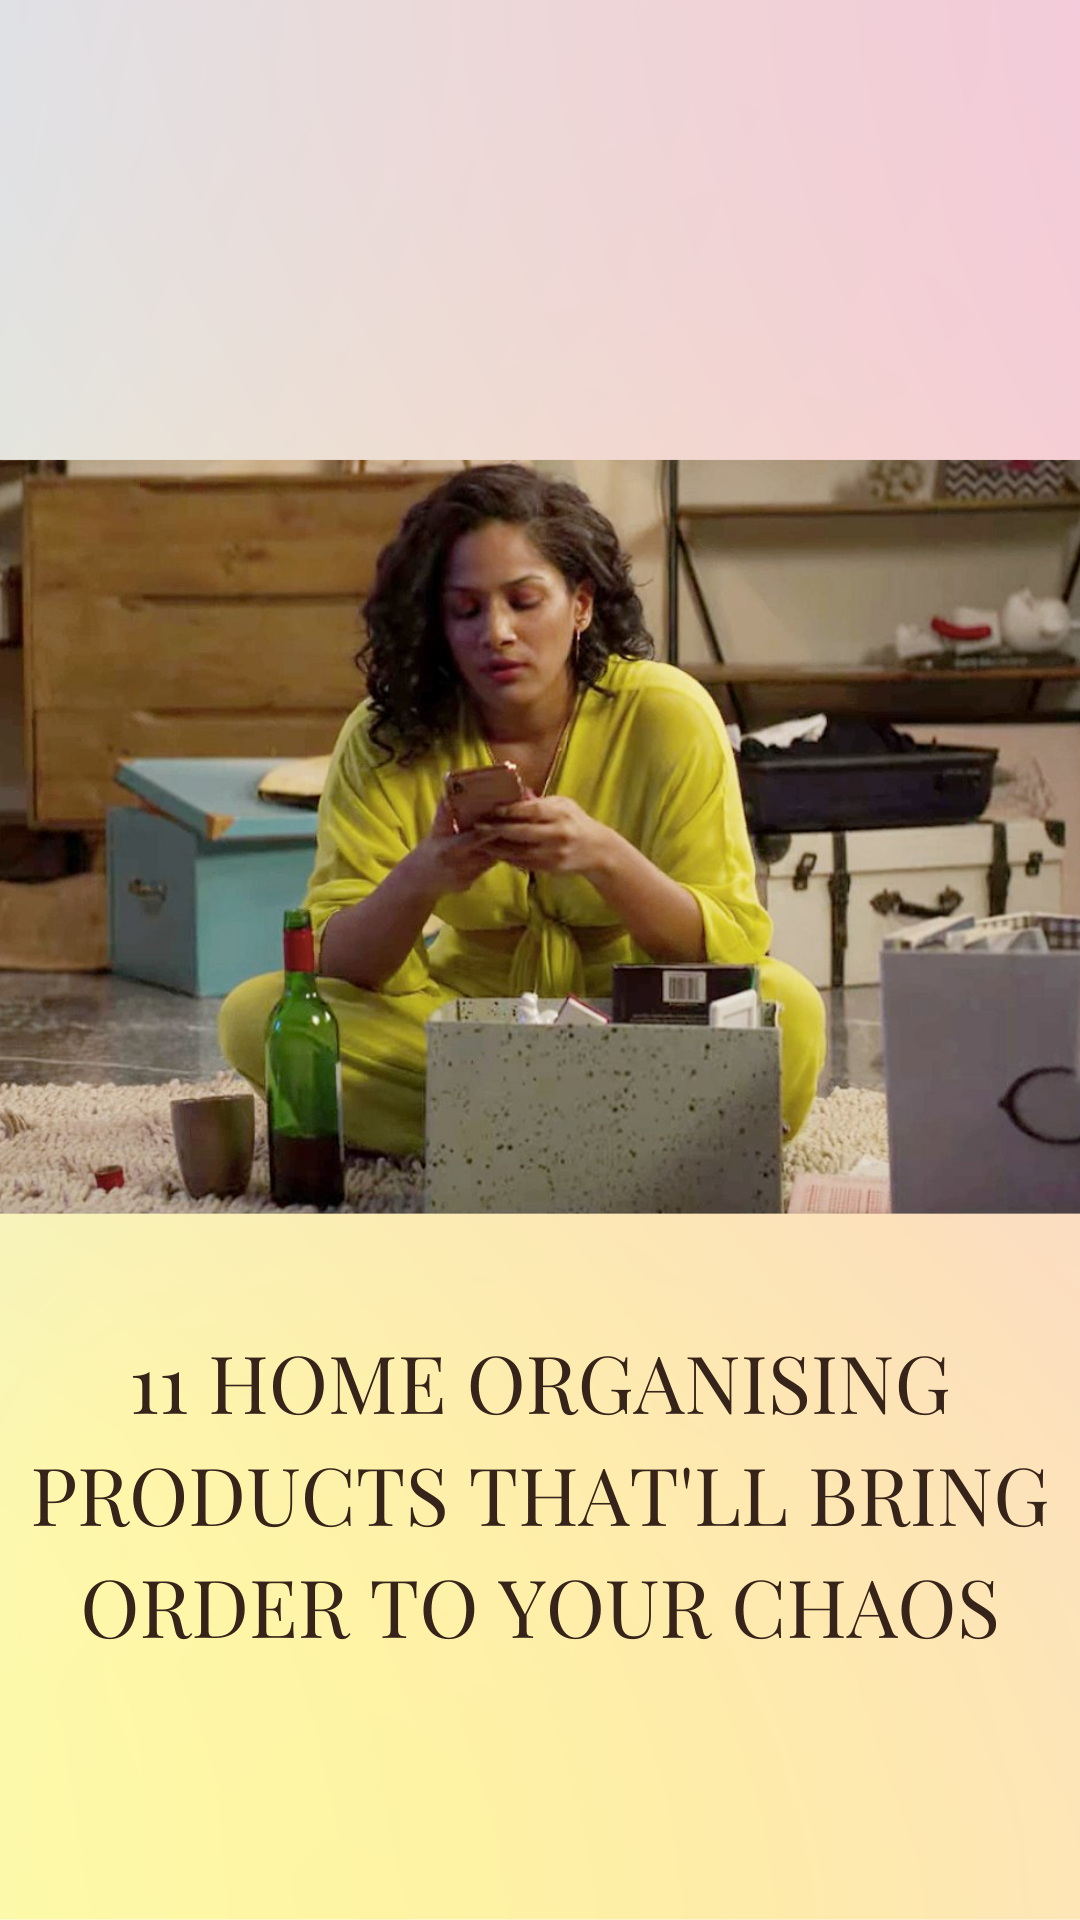 Organising Products For Your Home In 2021 Organization Home Organization Bring It On